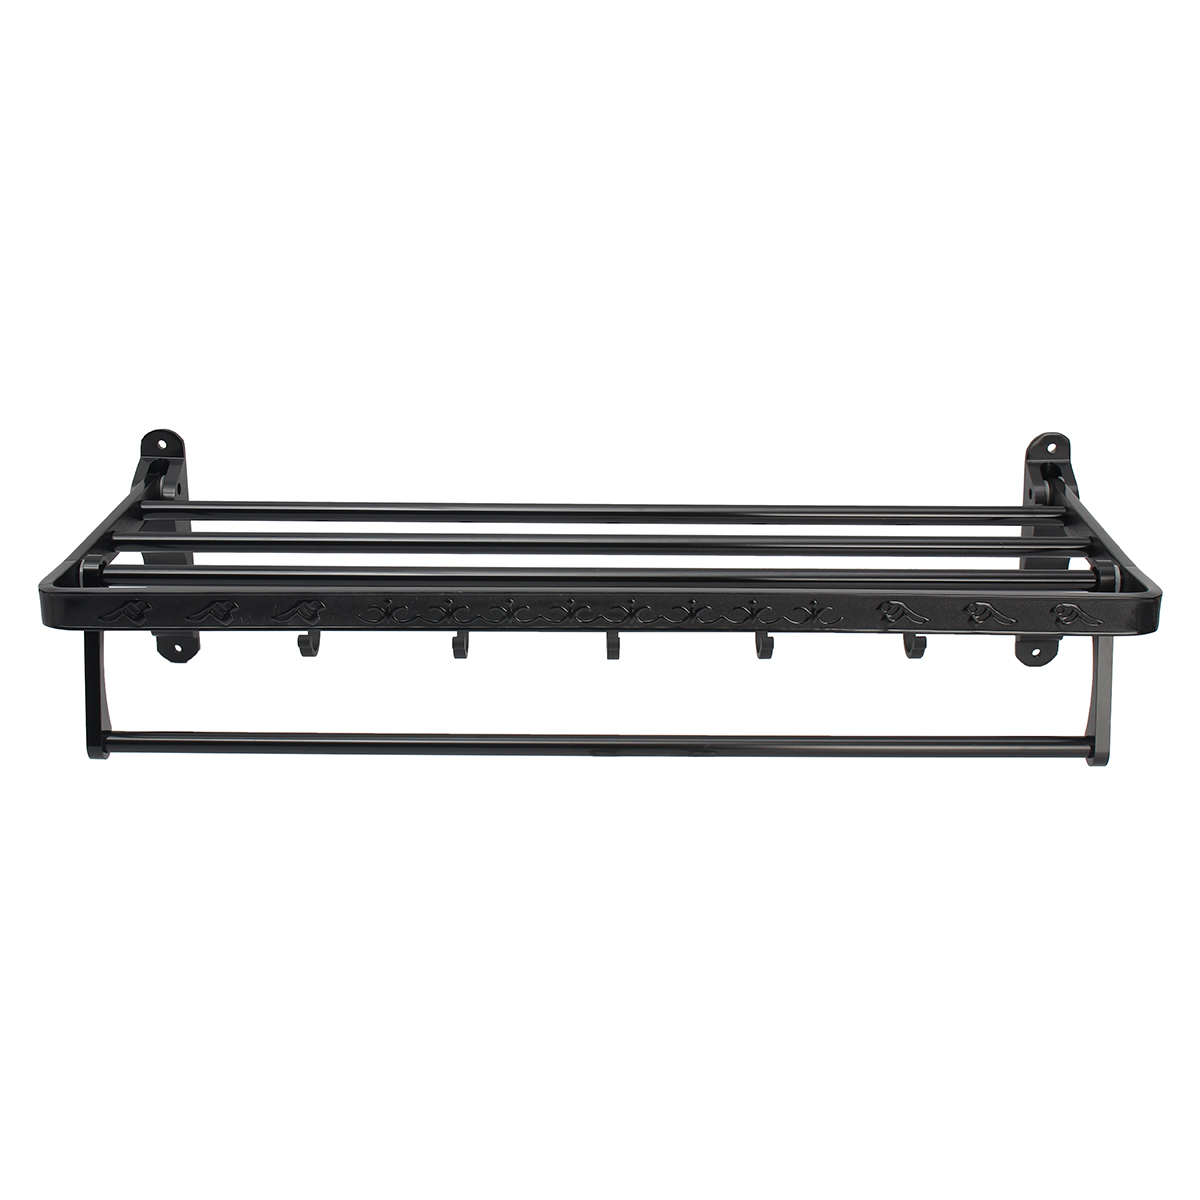 Black Wall Mounted Shelf Foldable Aluminum Washcloth Rack Towel Bar Hooks